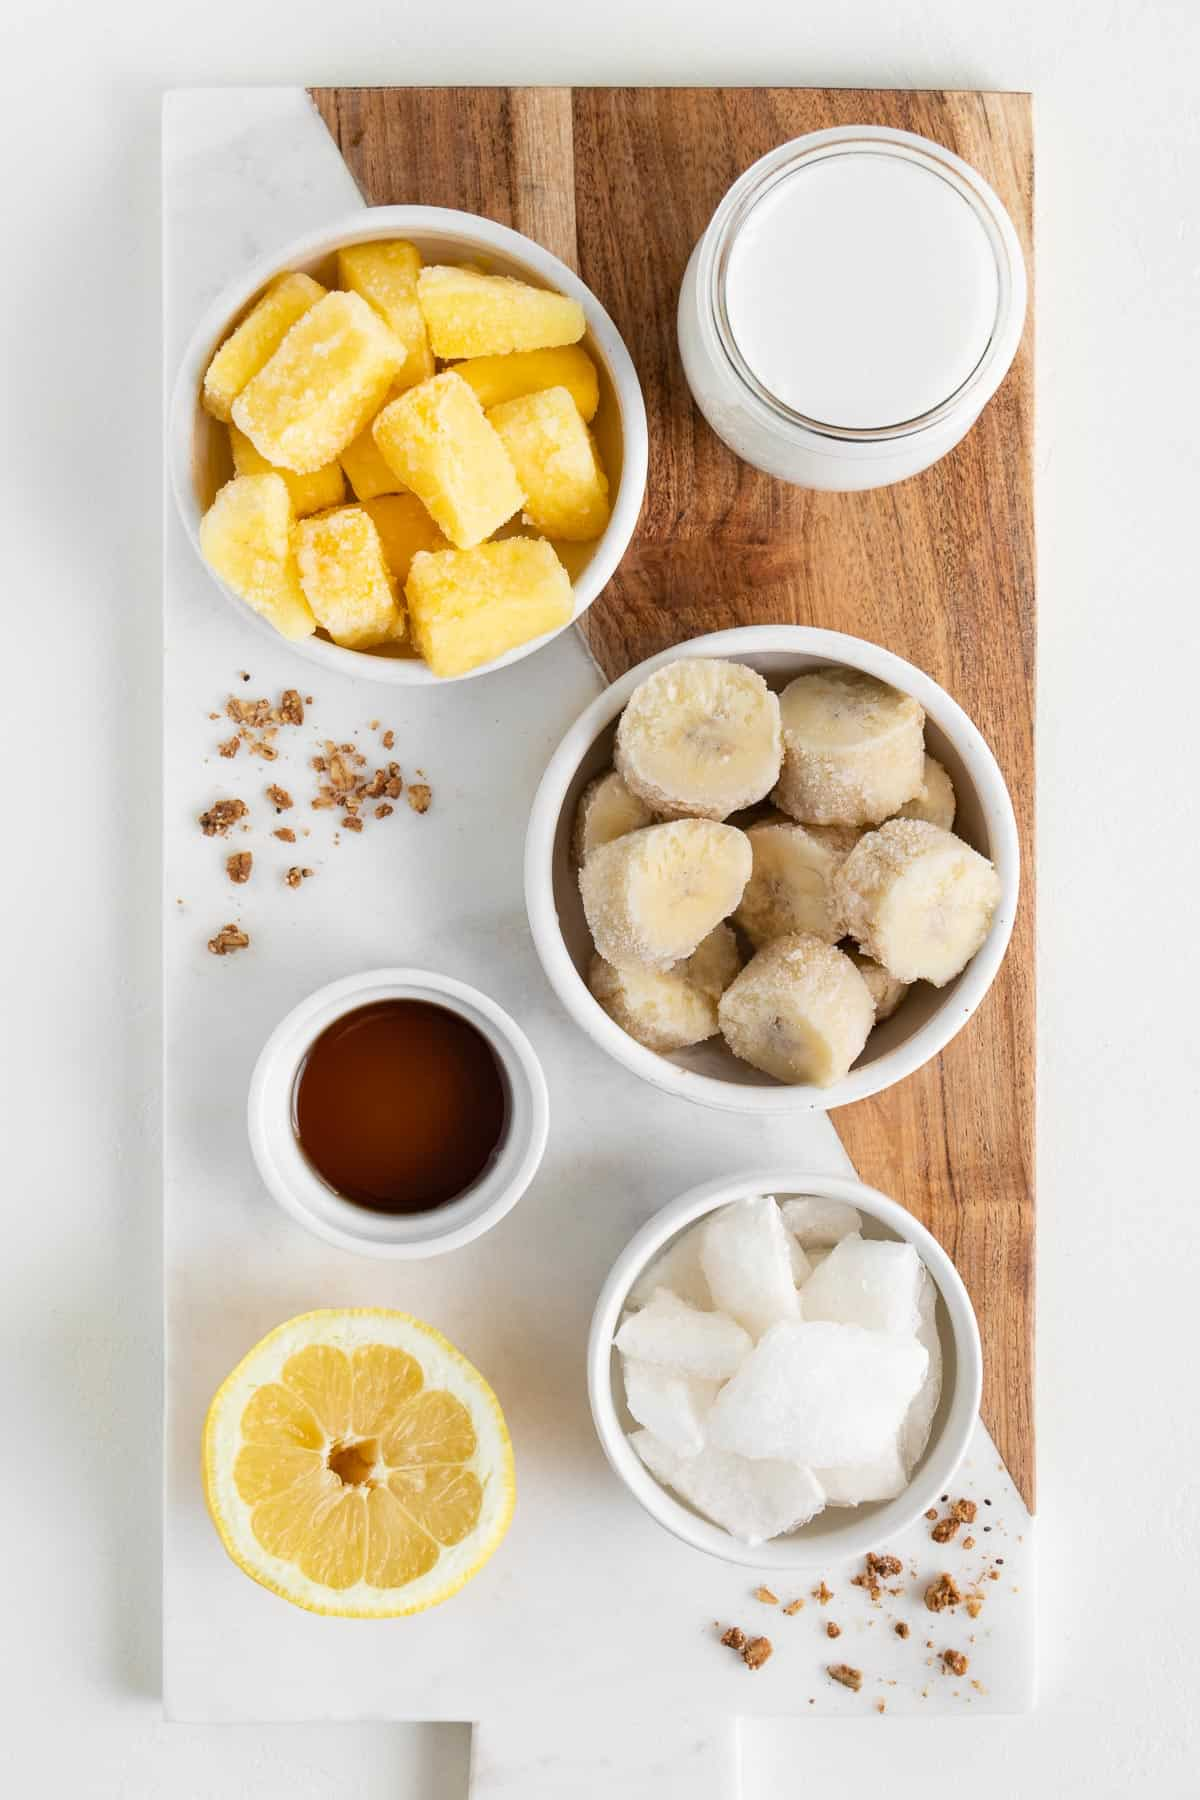 a marble wooden board topped with bananas, pineapple, maple syrup, lemon juice, coconut chunks, coconut milk, and a lemon